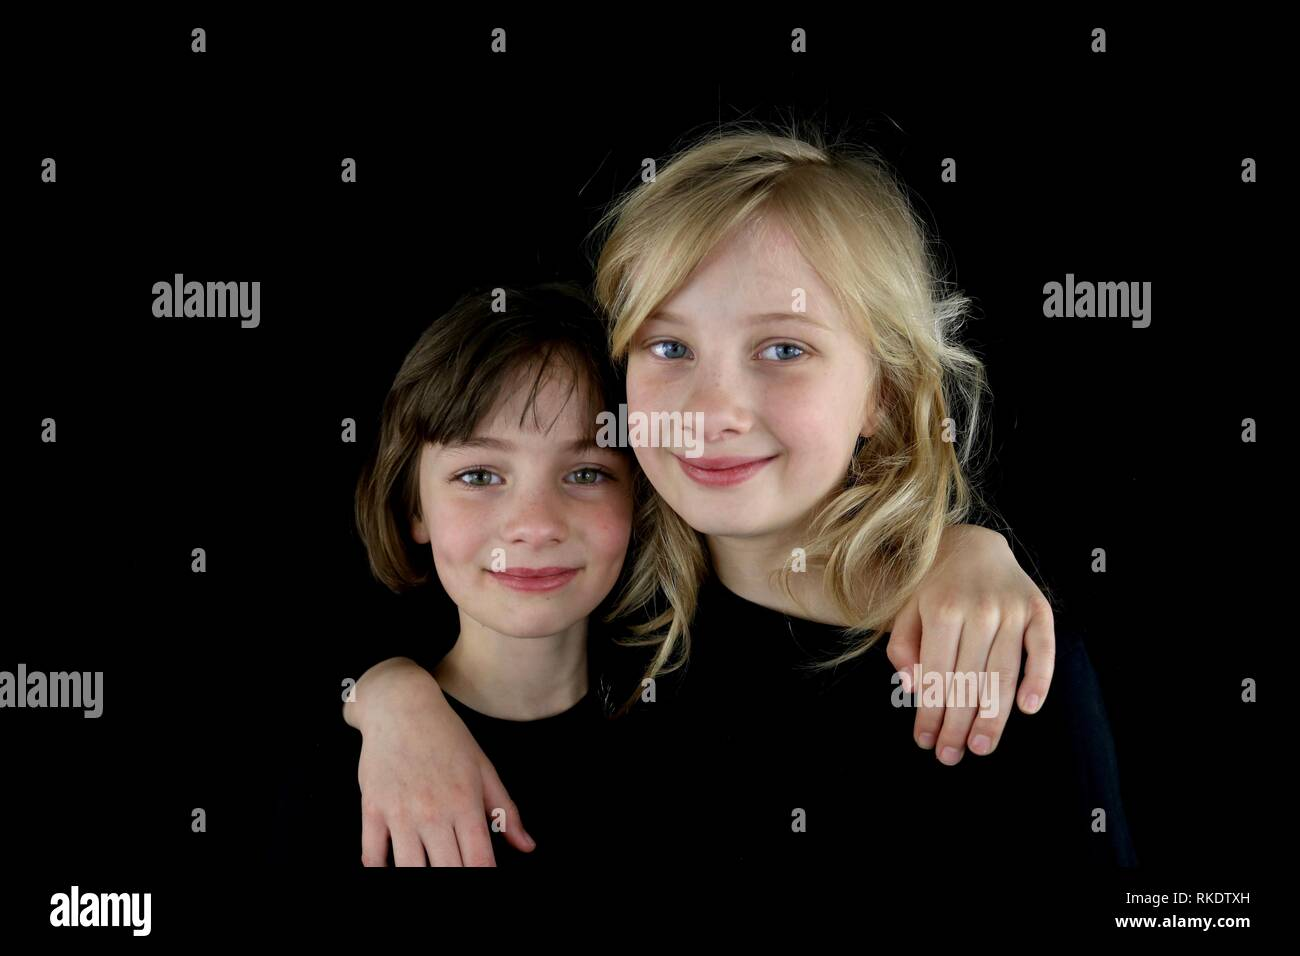 Two happy girls putting their arms around each other against a black background Stock Photo